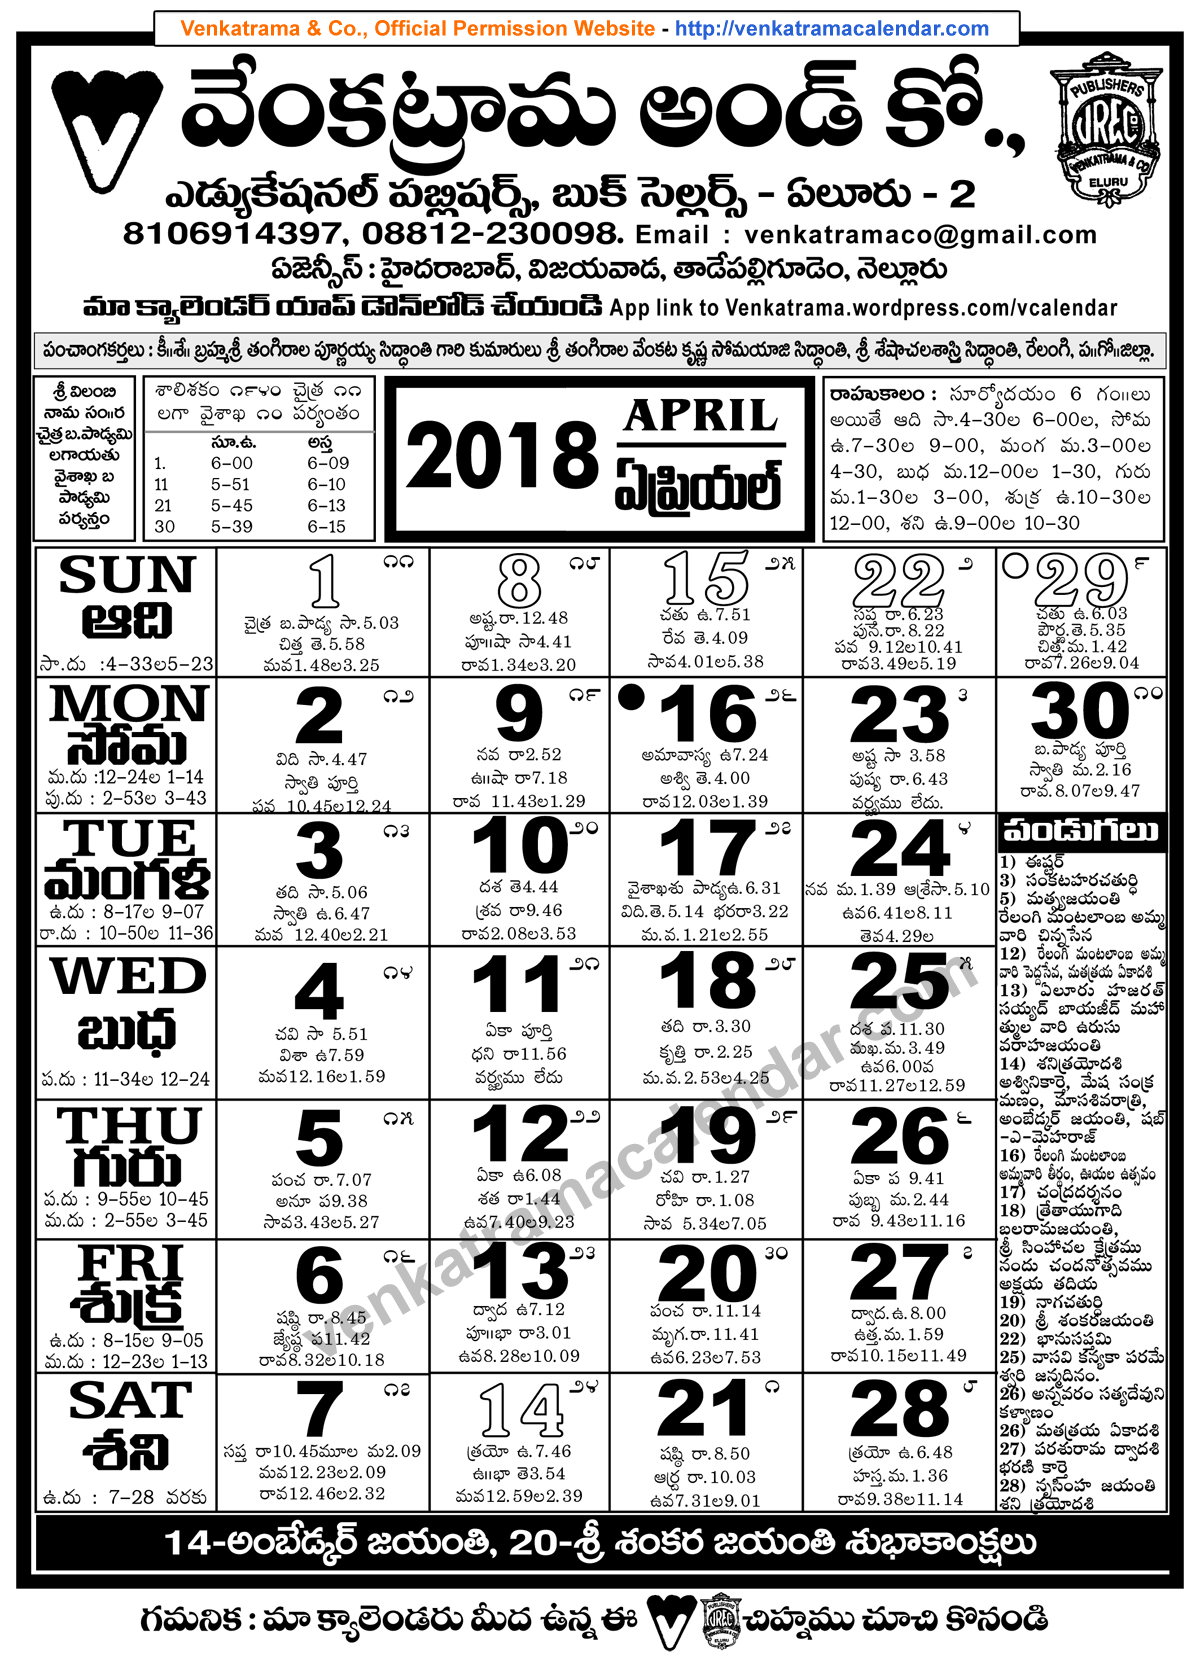 April Venkatrama Co Calendar : Venkatrama co april telugu calendar festivals holidays